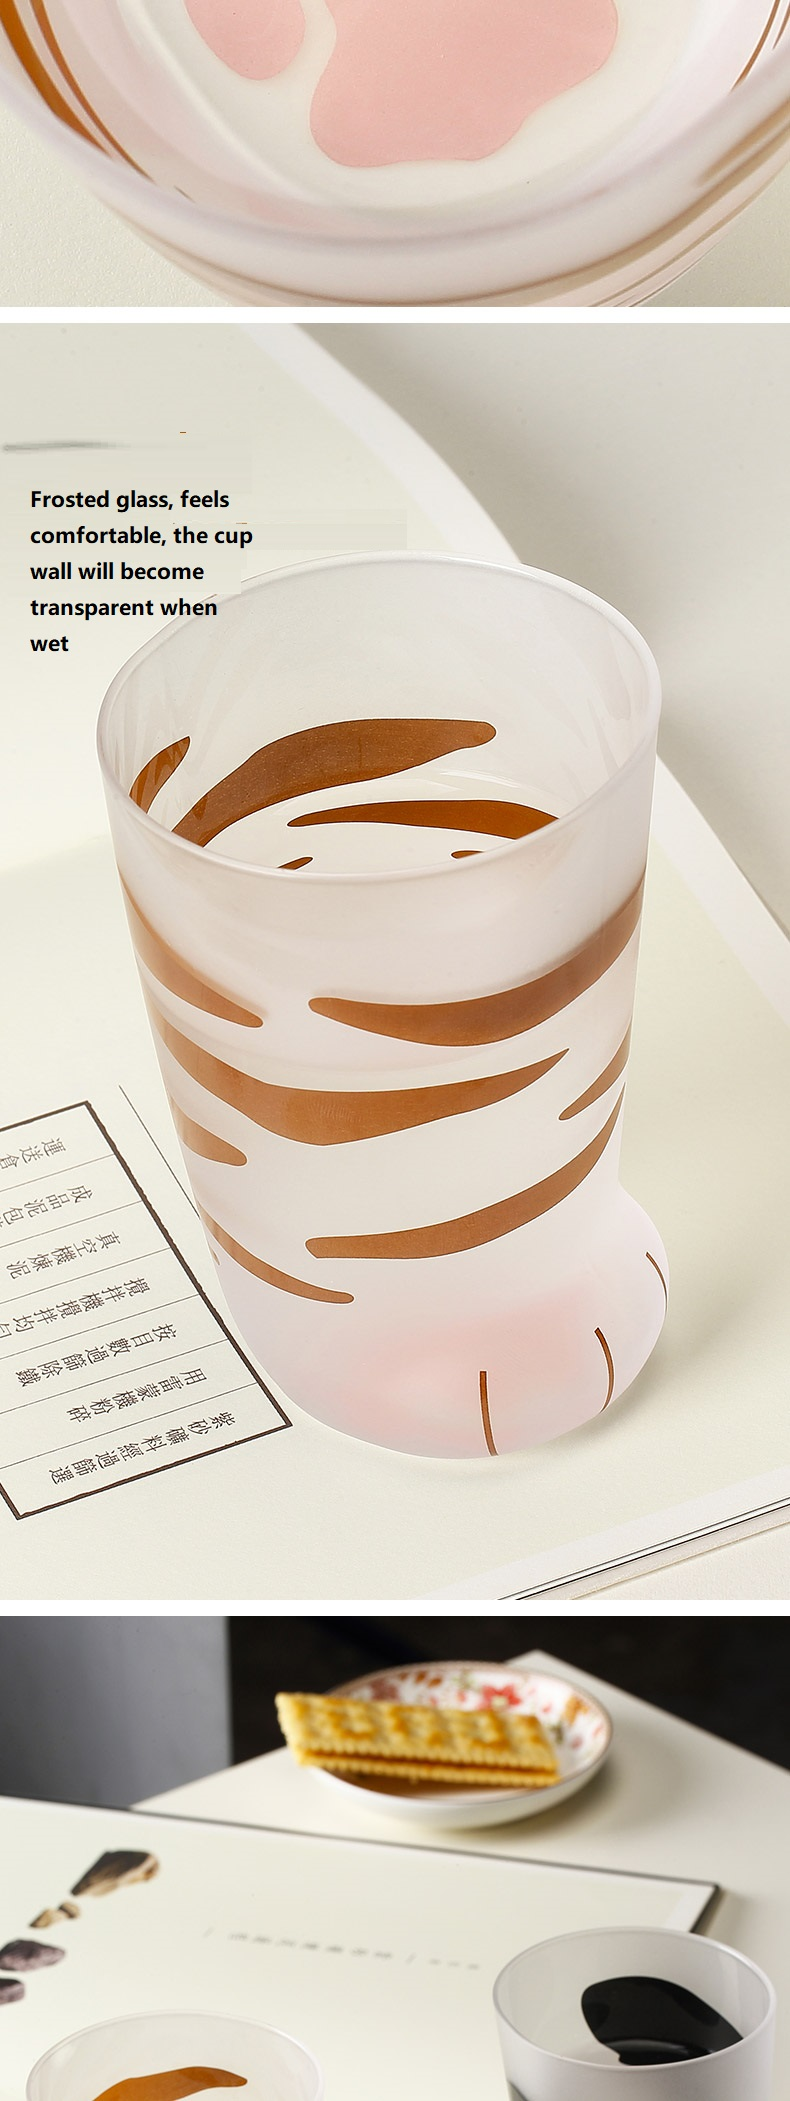 Hb8cfe15f5bbe401a8df8eae19fd162acM - 350ml Mug Heat-resistant Glass Cat Cup Tiger Paws Office Matte Cat Paws Creative Milk Coffee Cup Cute Children Drink Bottle